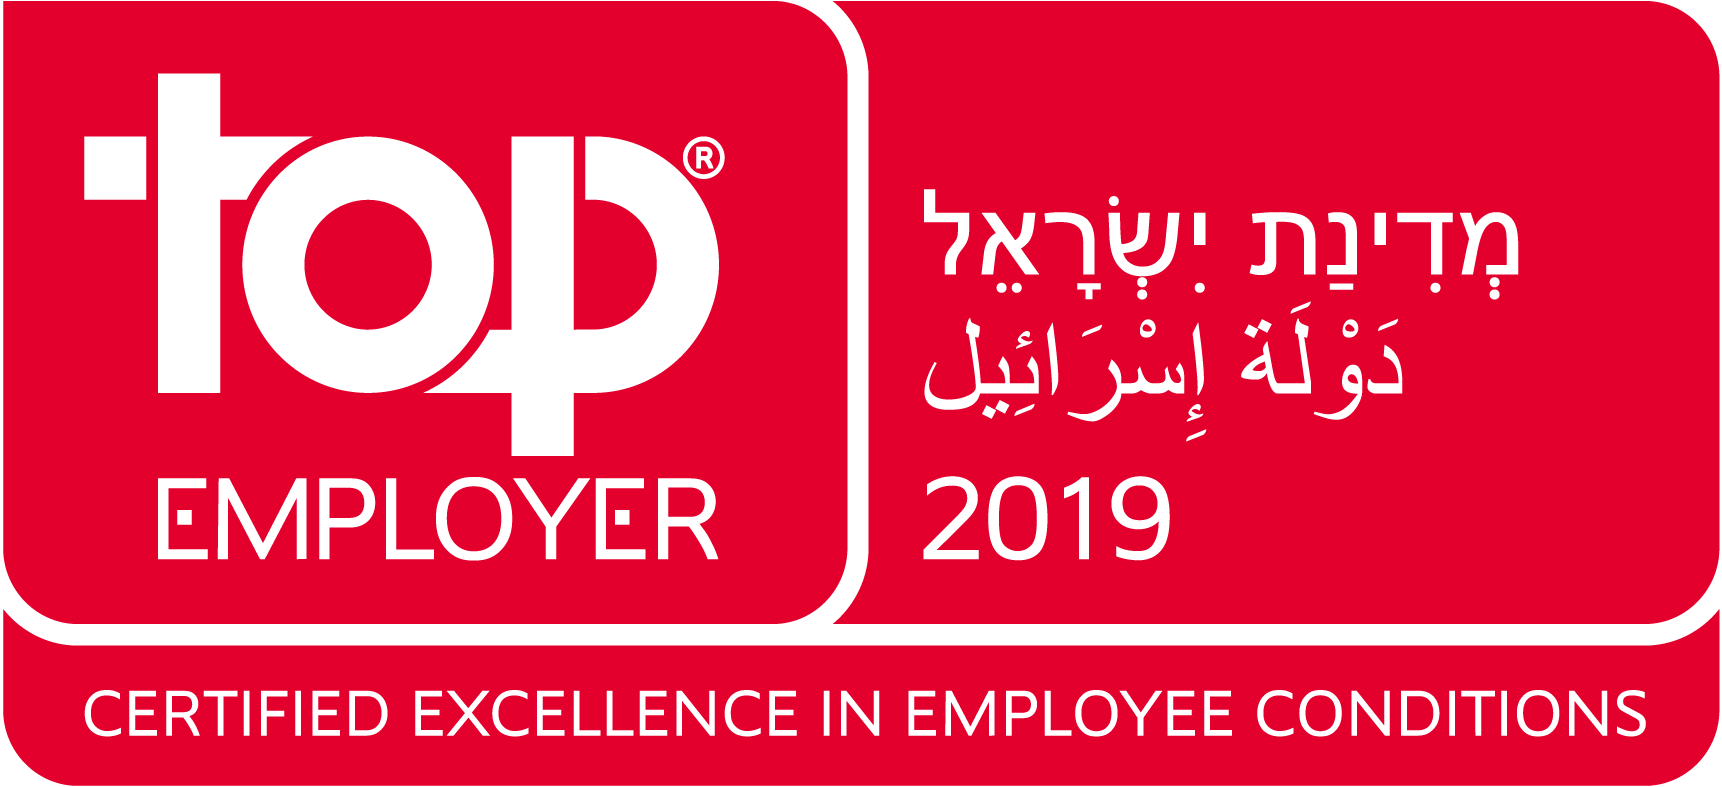 Top_Employer_Israel_2019